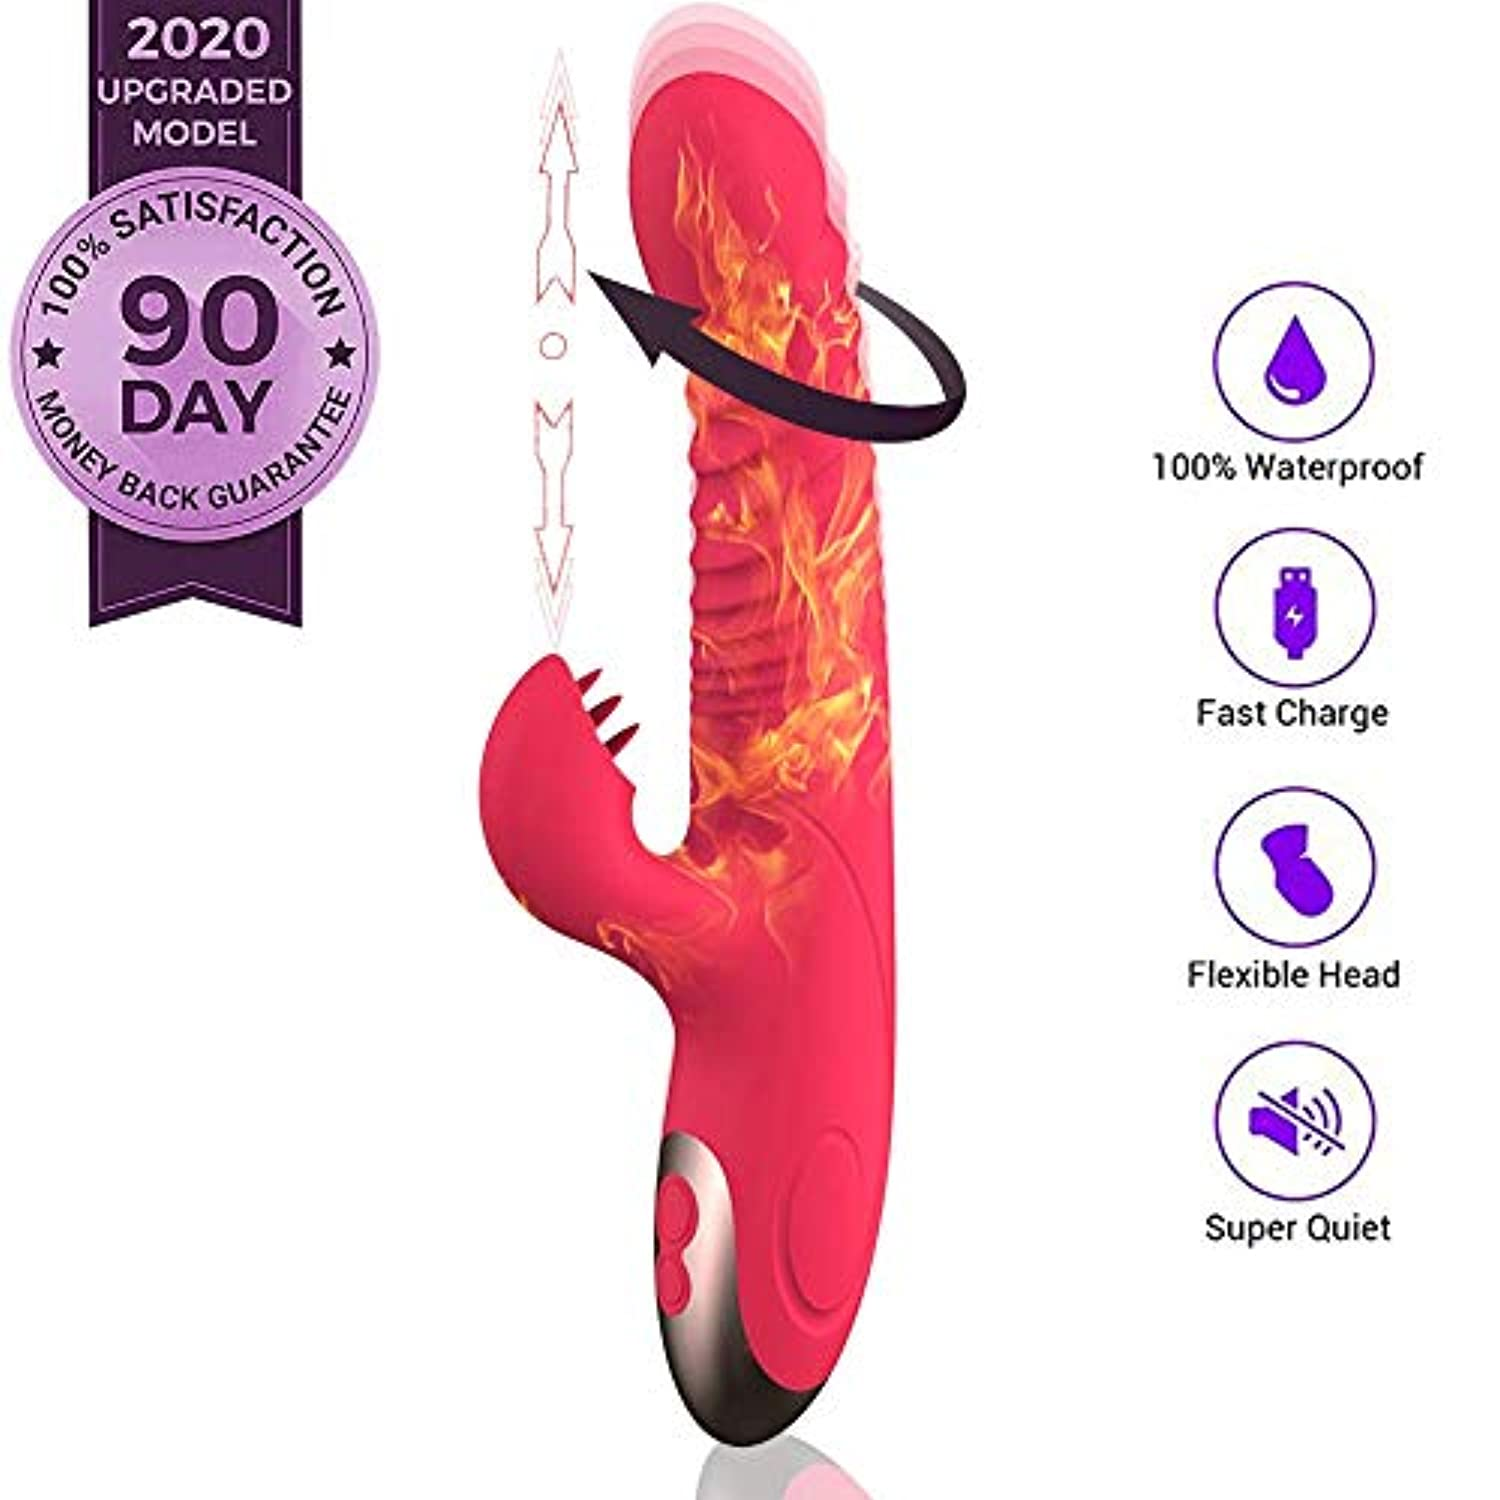 2020 New 3 IN 1 Sexy Toyswomen Ðidó Dual Motor Adullt Toys for Womee 10speed Physical Therapy Point Exercise Relaxation Massage USB Cable Waterproof